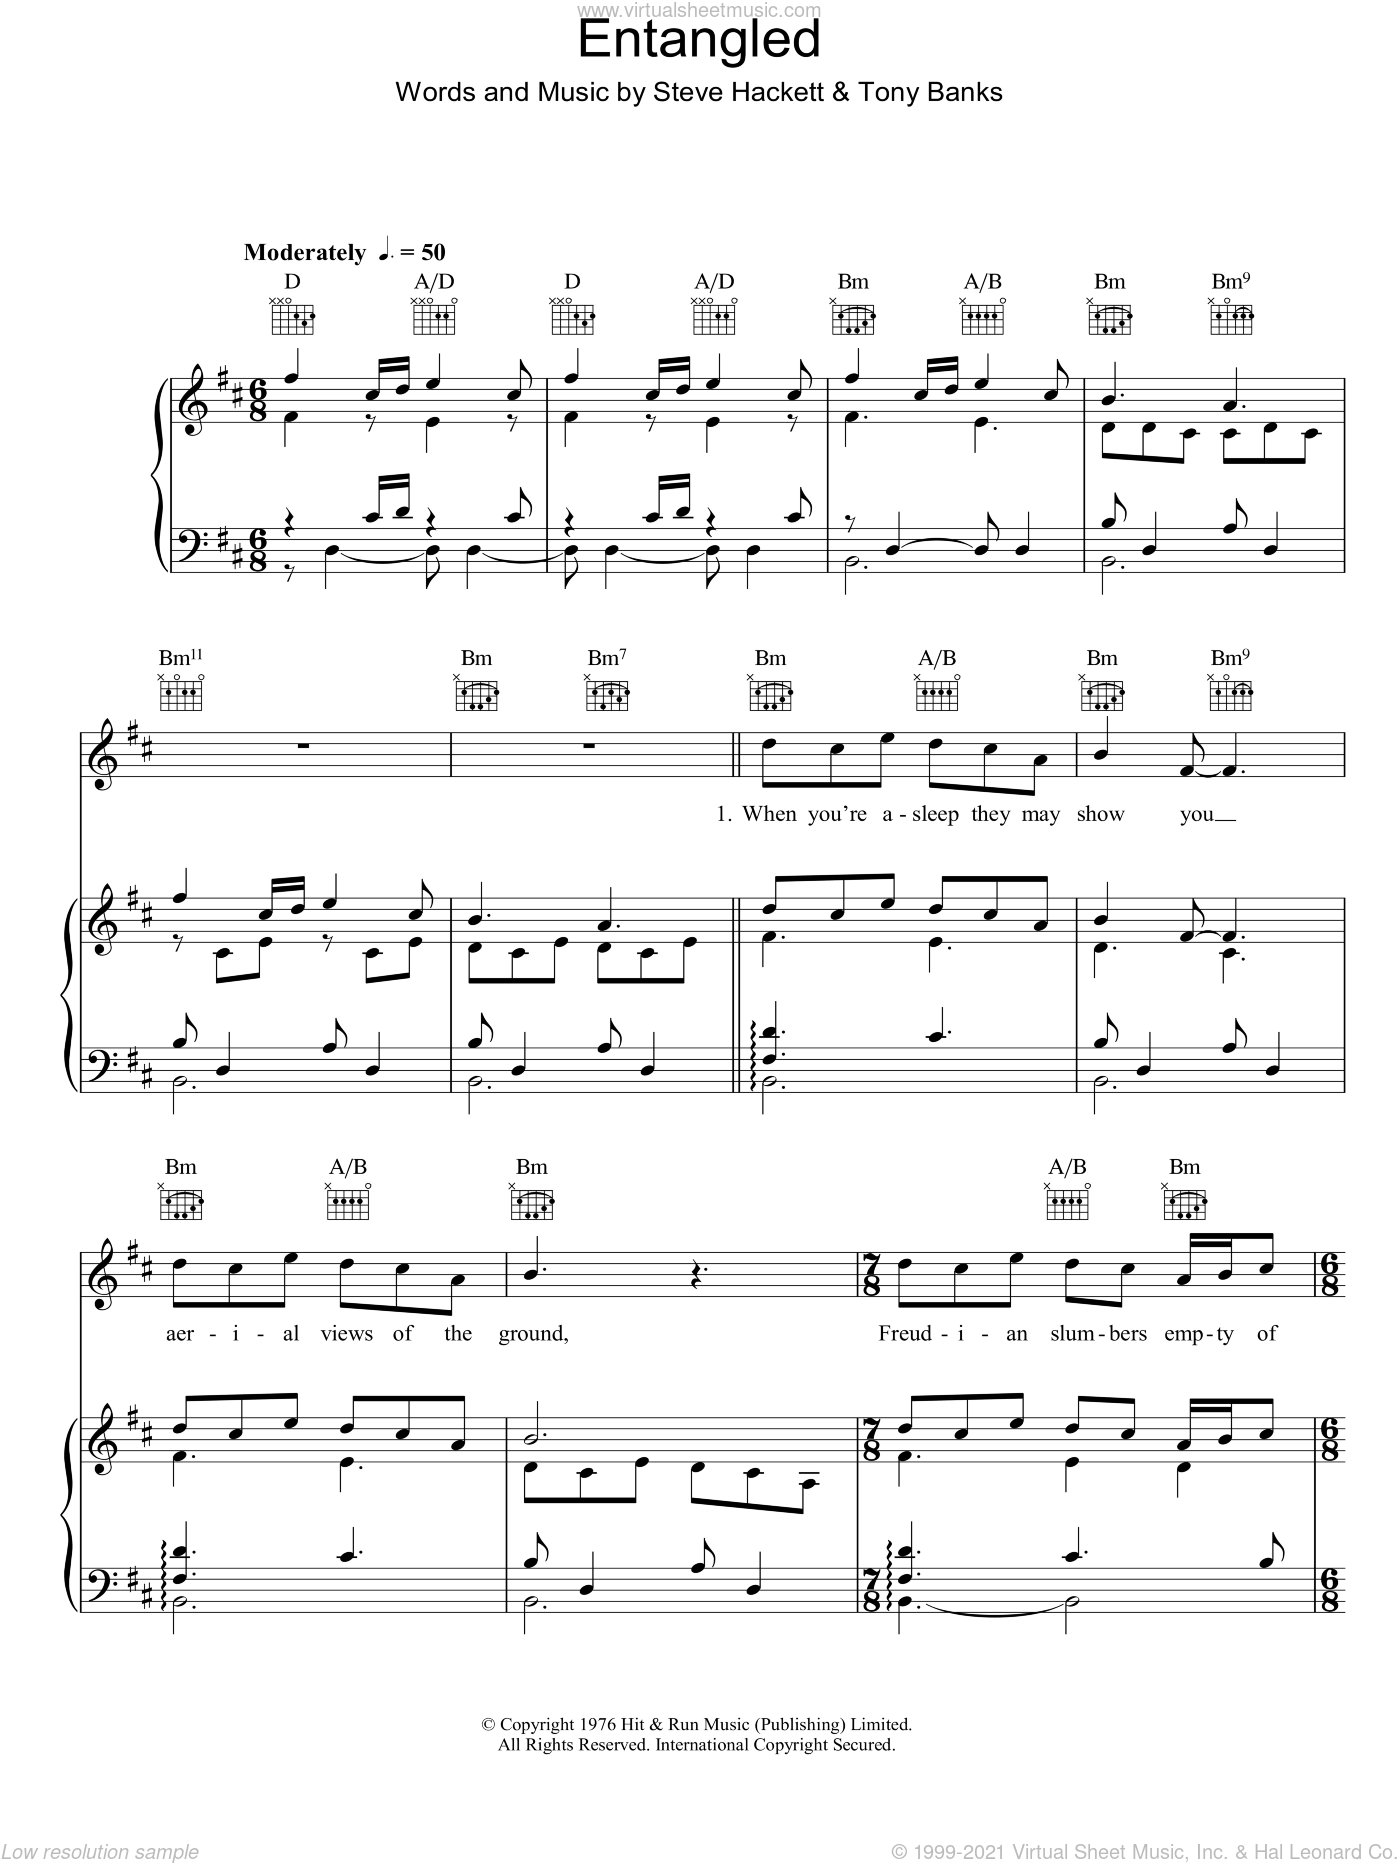 Entangled sheet music for voice, piano or guitar by Steve Hackett